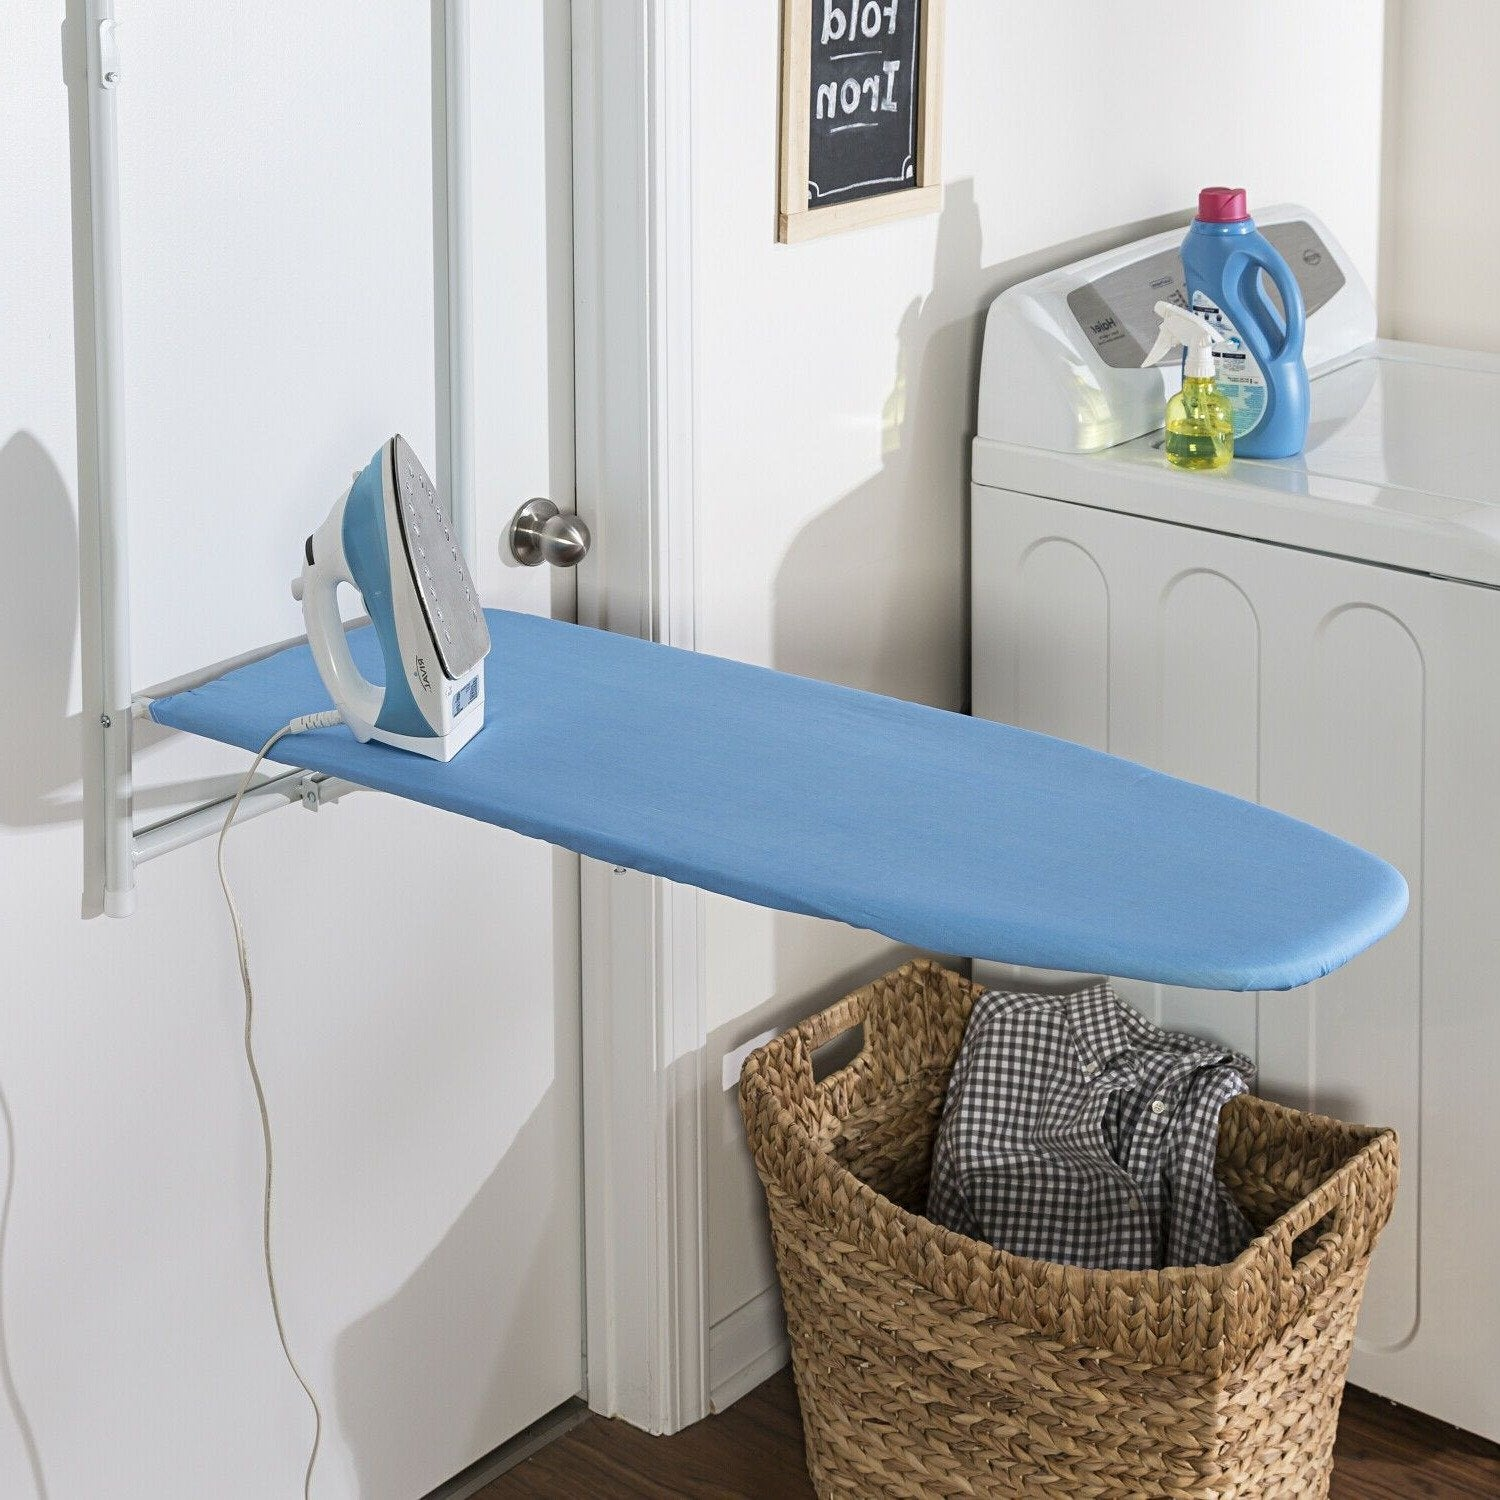 Wall Mount Ironing Board Small Mini Hanging Foldable Ironing Board - Morealis